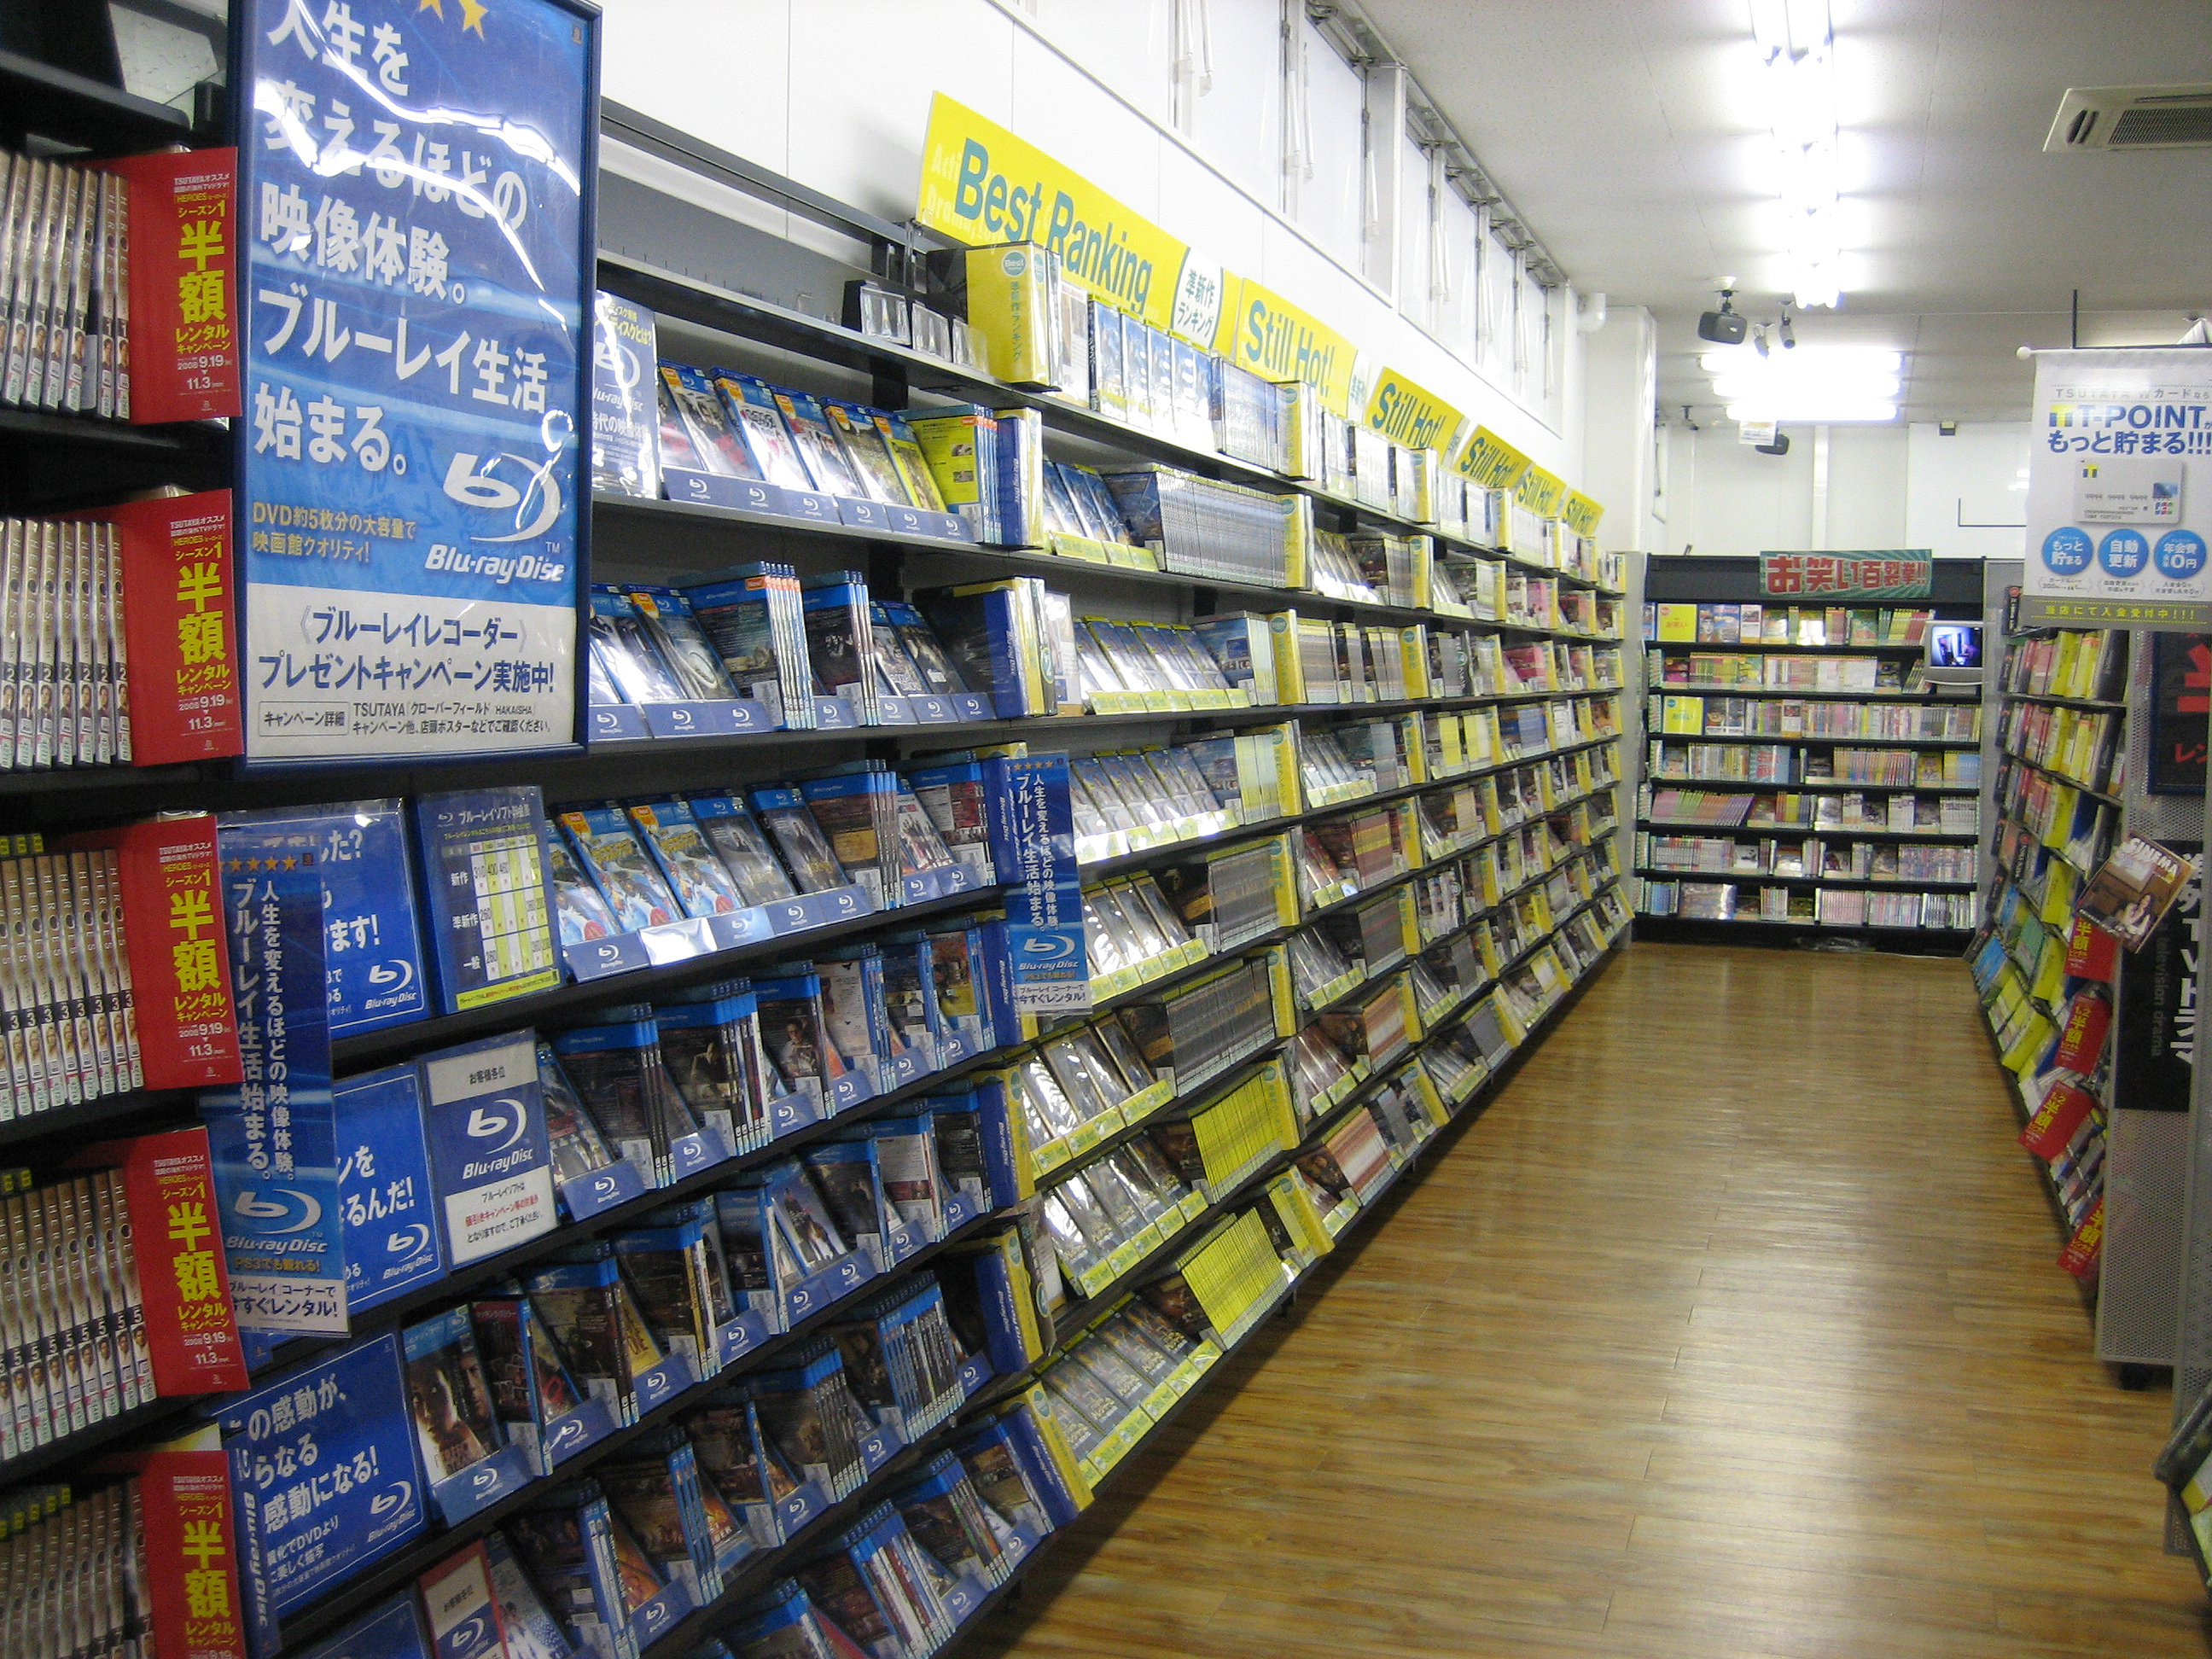 Interior_of_Rental_video_shop_in_Japan